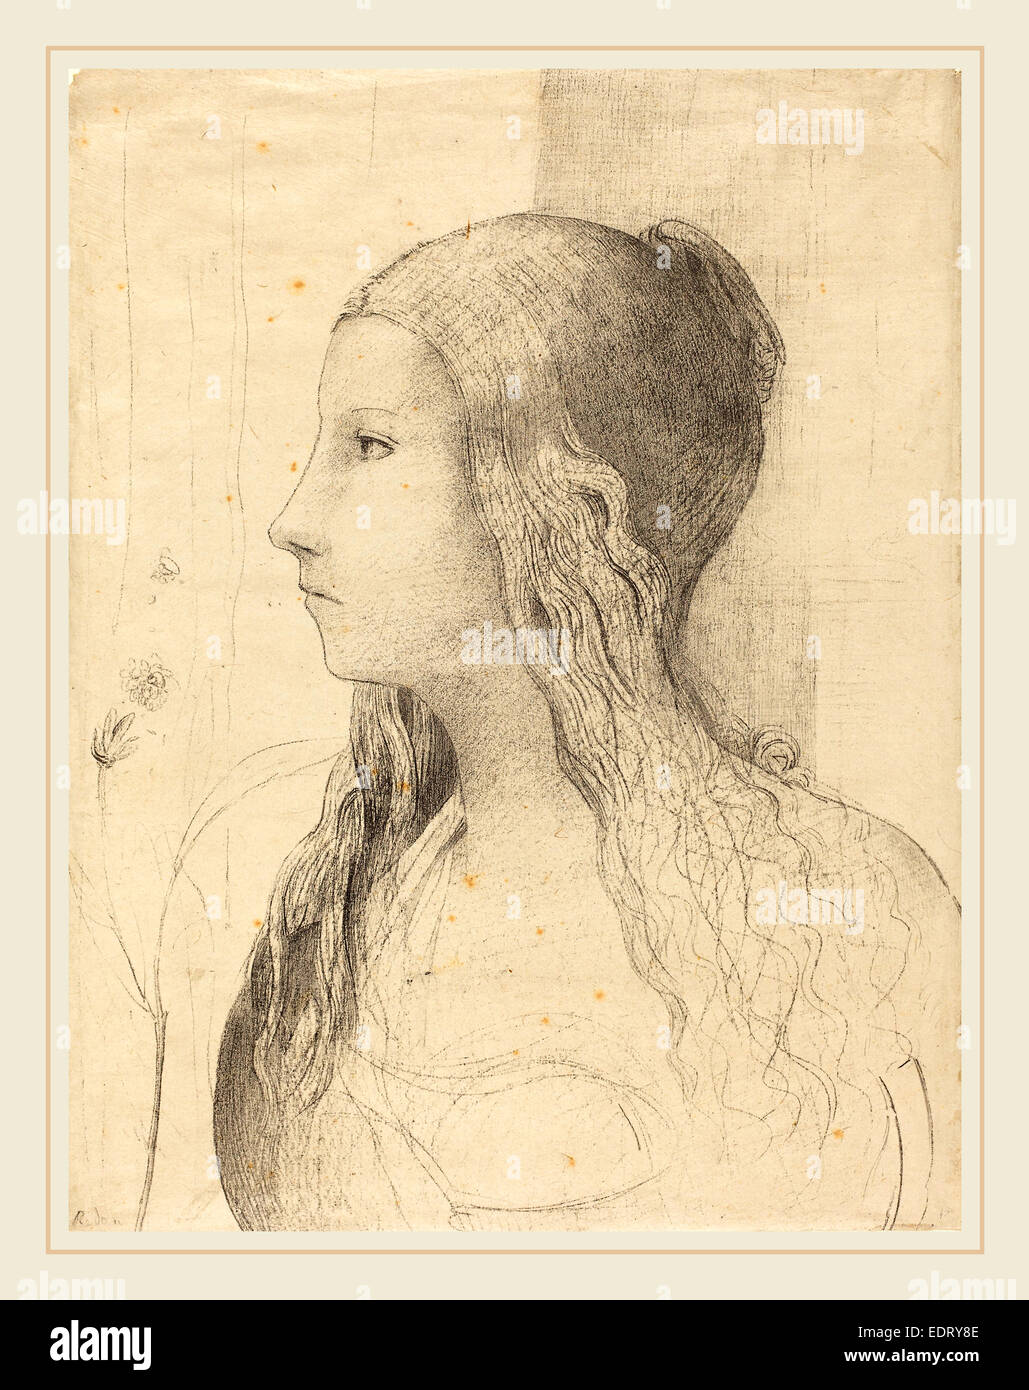 Odilon Redon (French, 1840-1916), Brunnhilde, 1894, lithograph - Stock Image